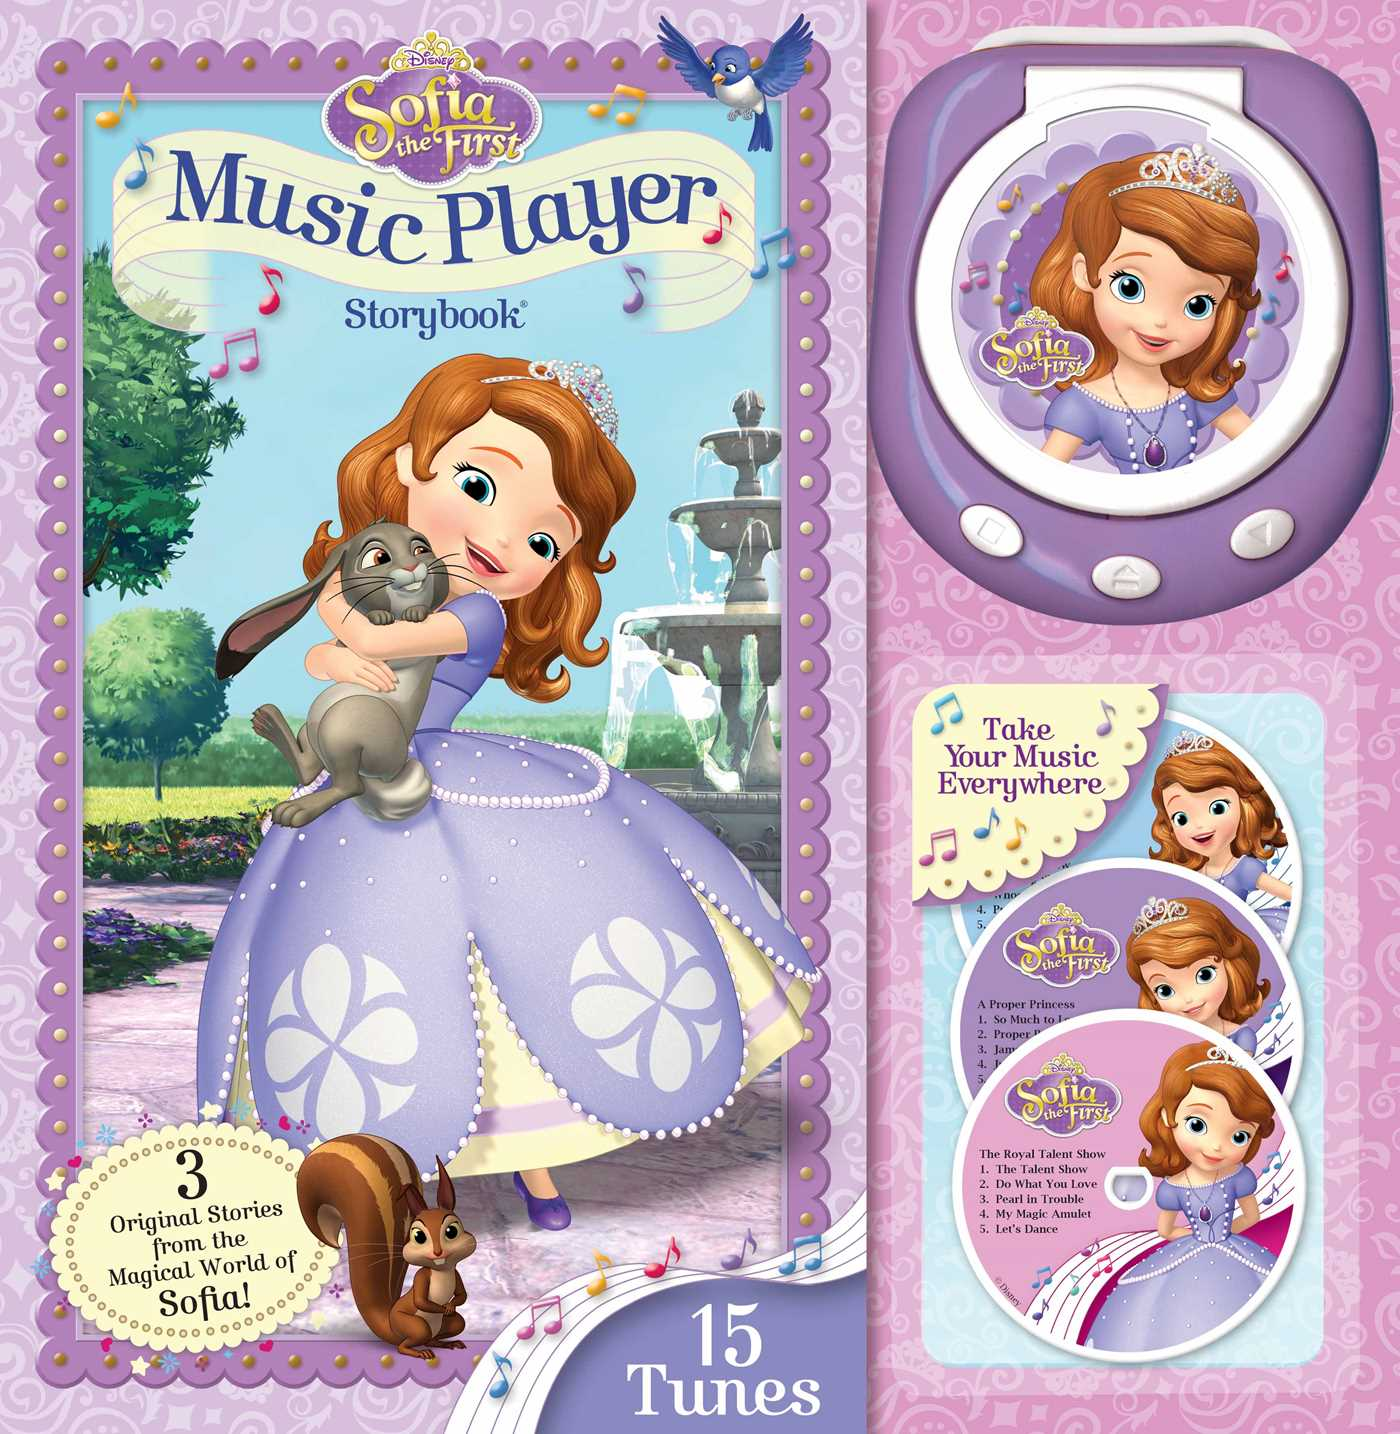 Disney sofia the first music player storybook 9780794433574 hr. Disney Sofia the First Music Player Storybook   Book by Disney